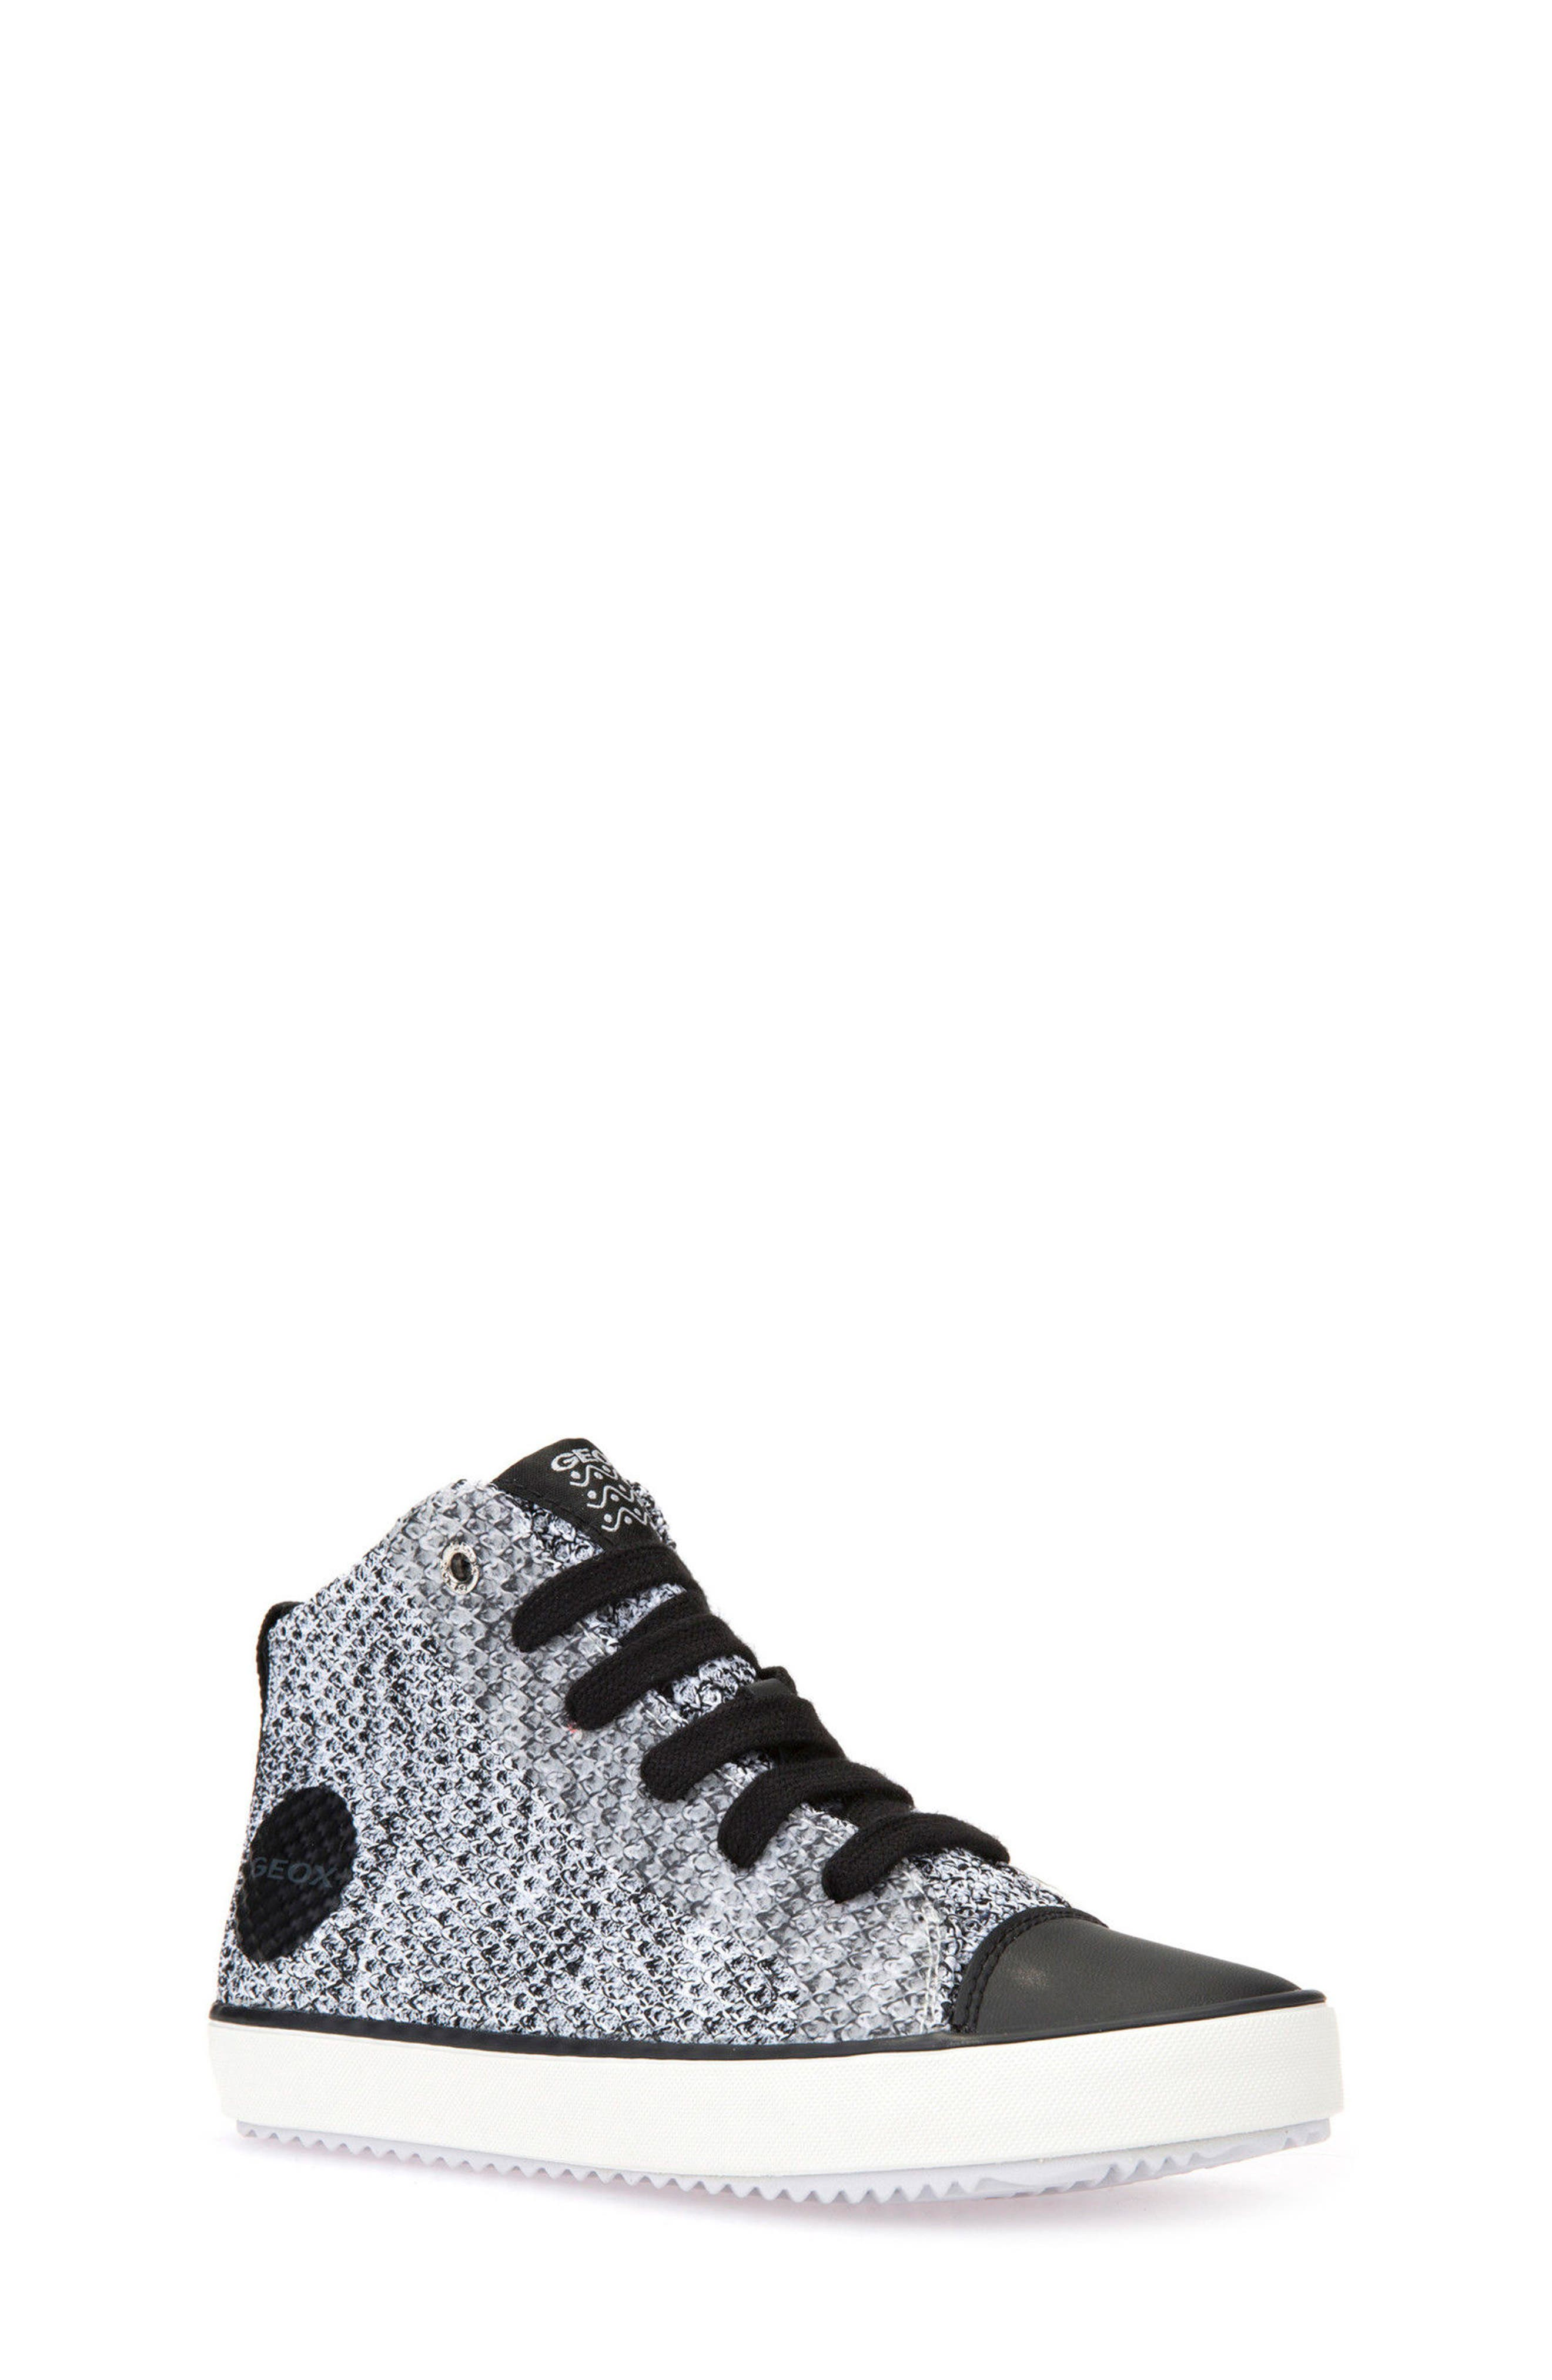 GEOX,                             Alonisso Knit Mid Top Sneaker,                             Main thumbnail 1, color,                             115